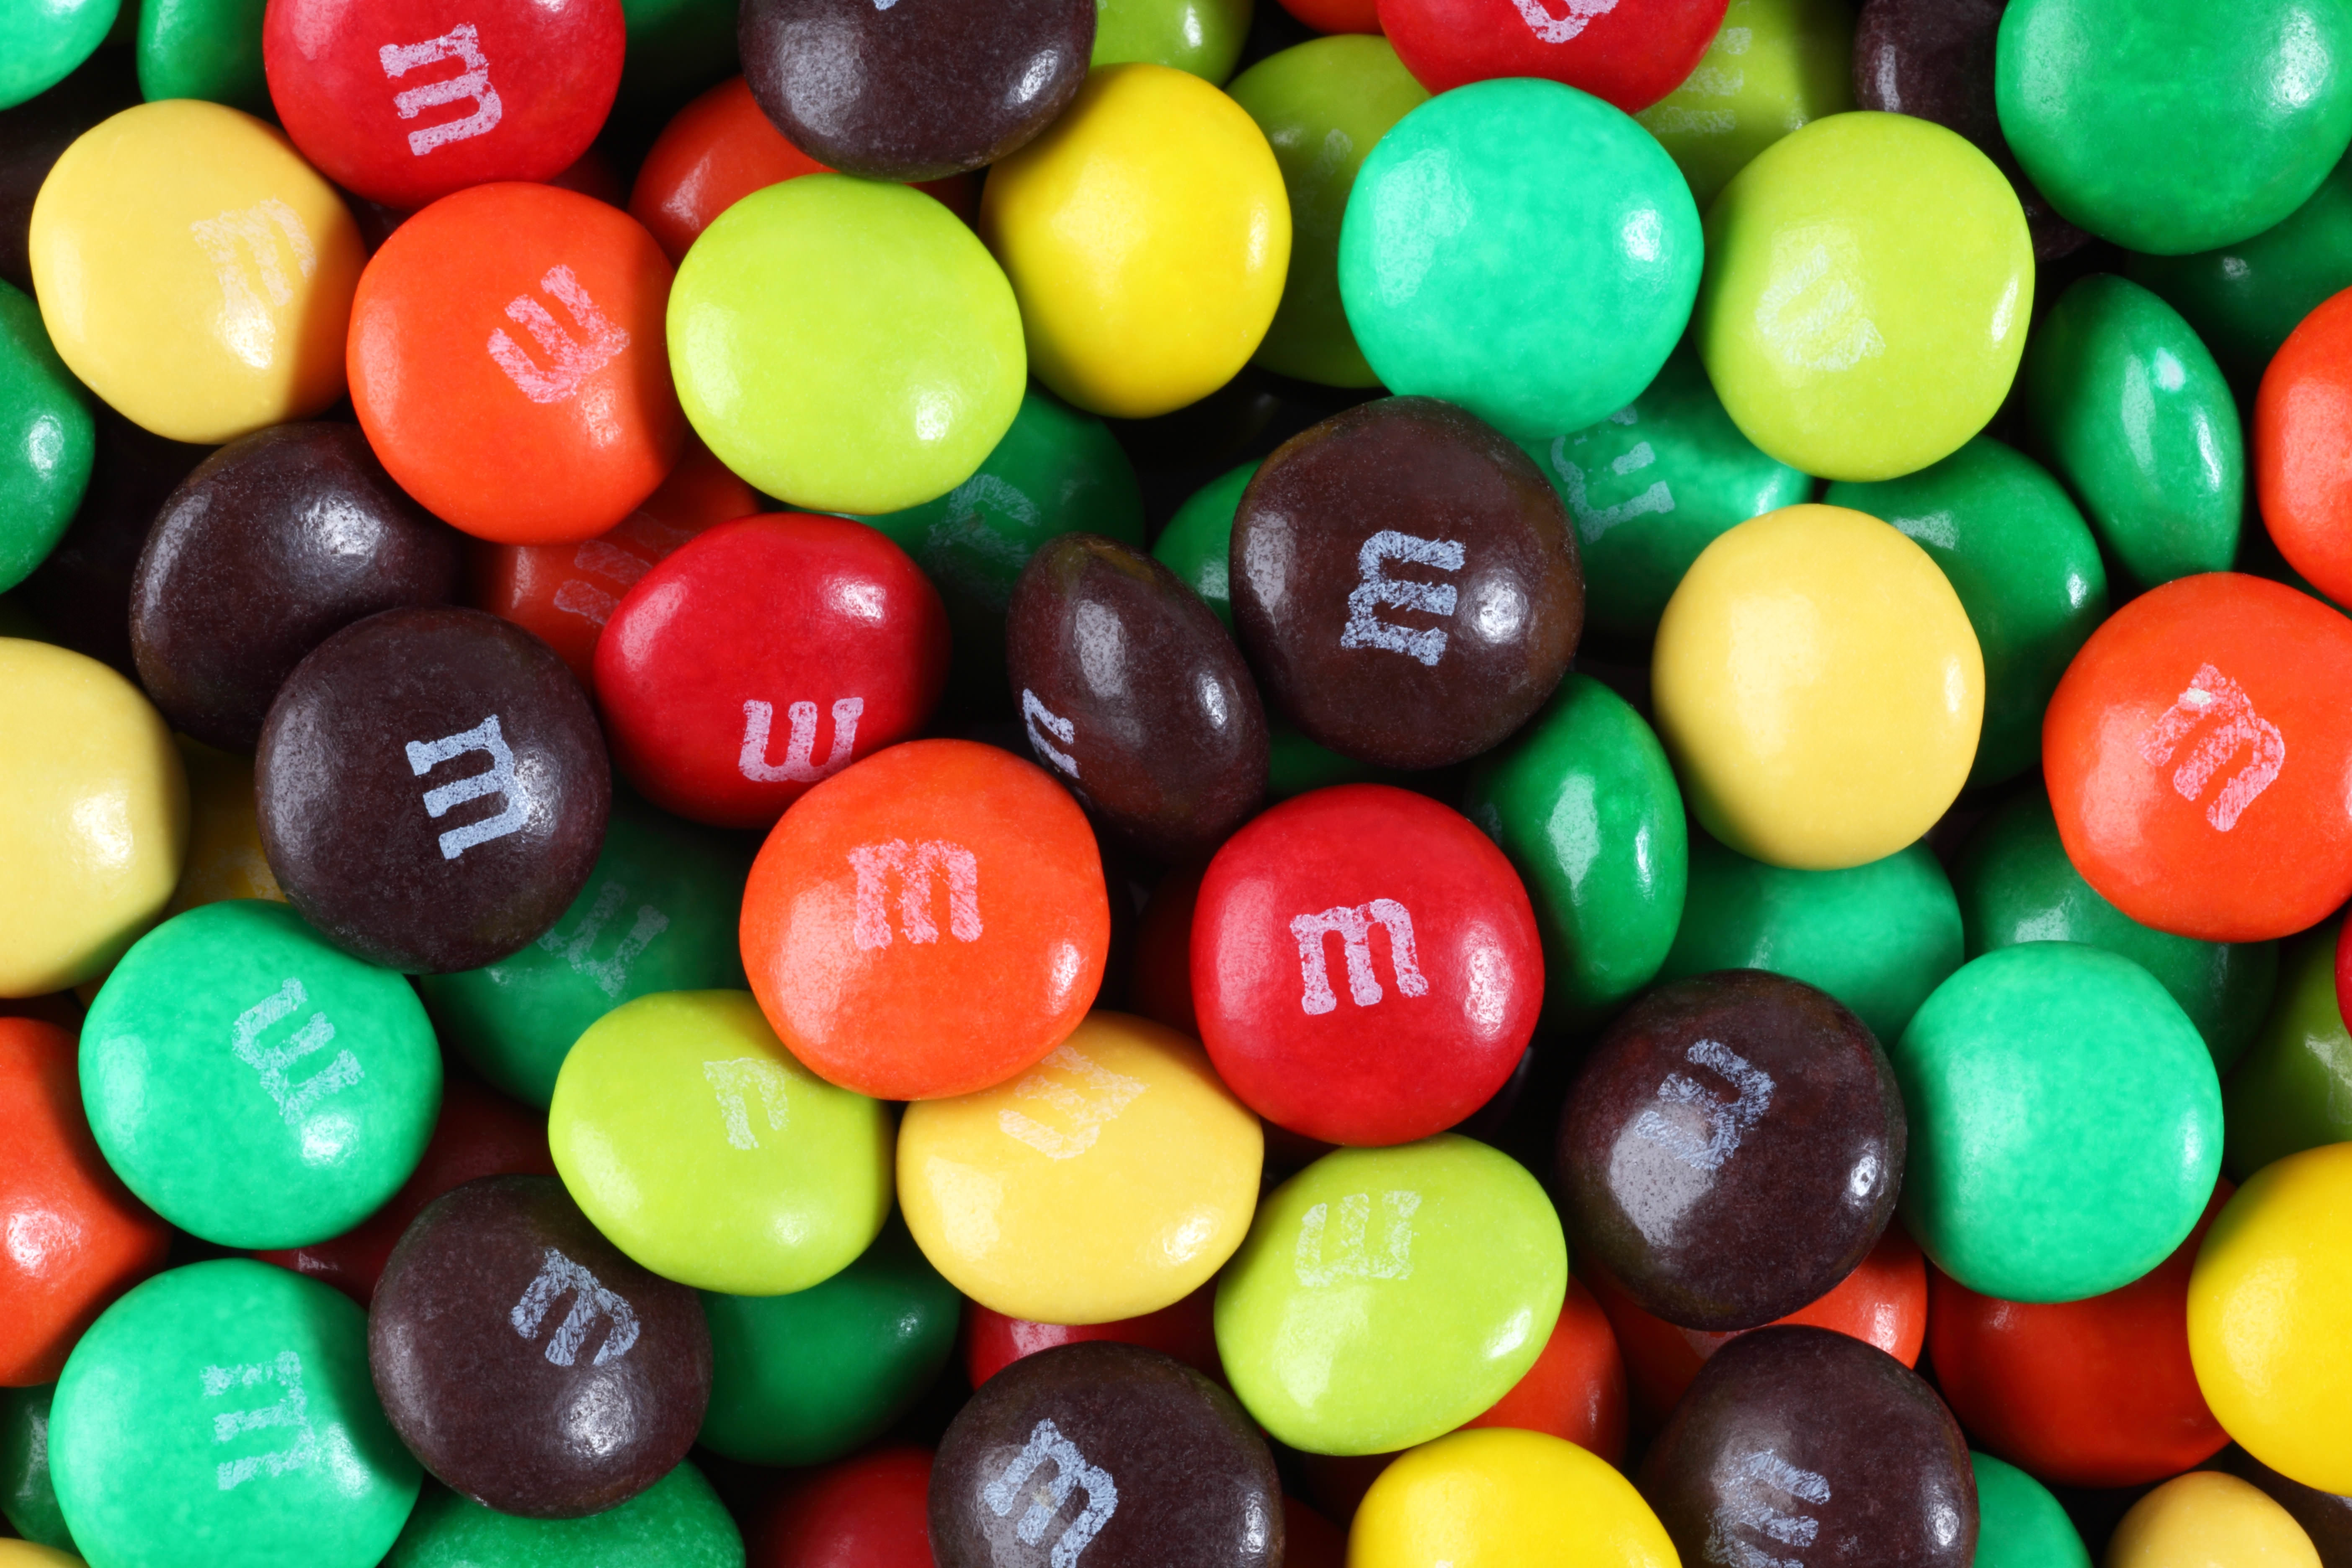 The Power and Glory of M&Ms